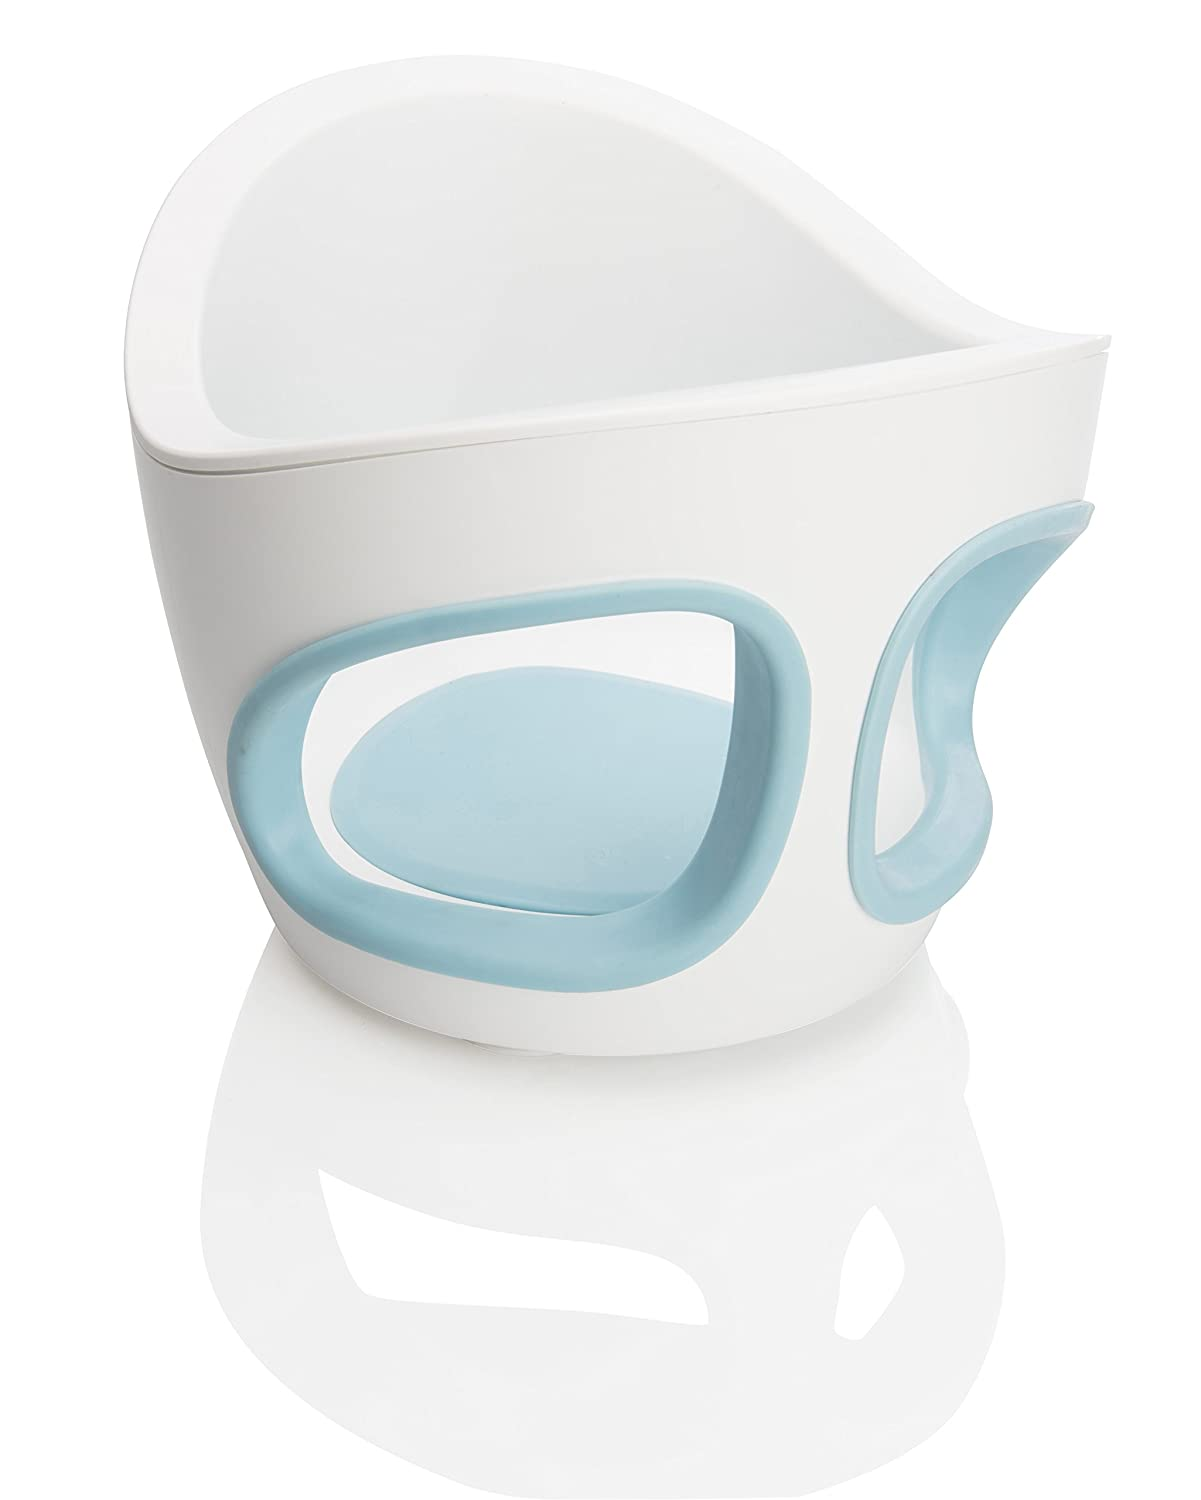 BABYMOOV Aqua Seat Baby Bath Seat (White): Amazon.co.uk: Baby